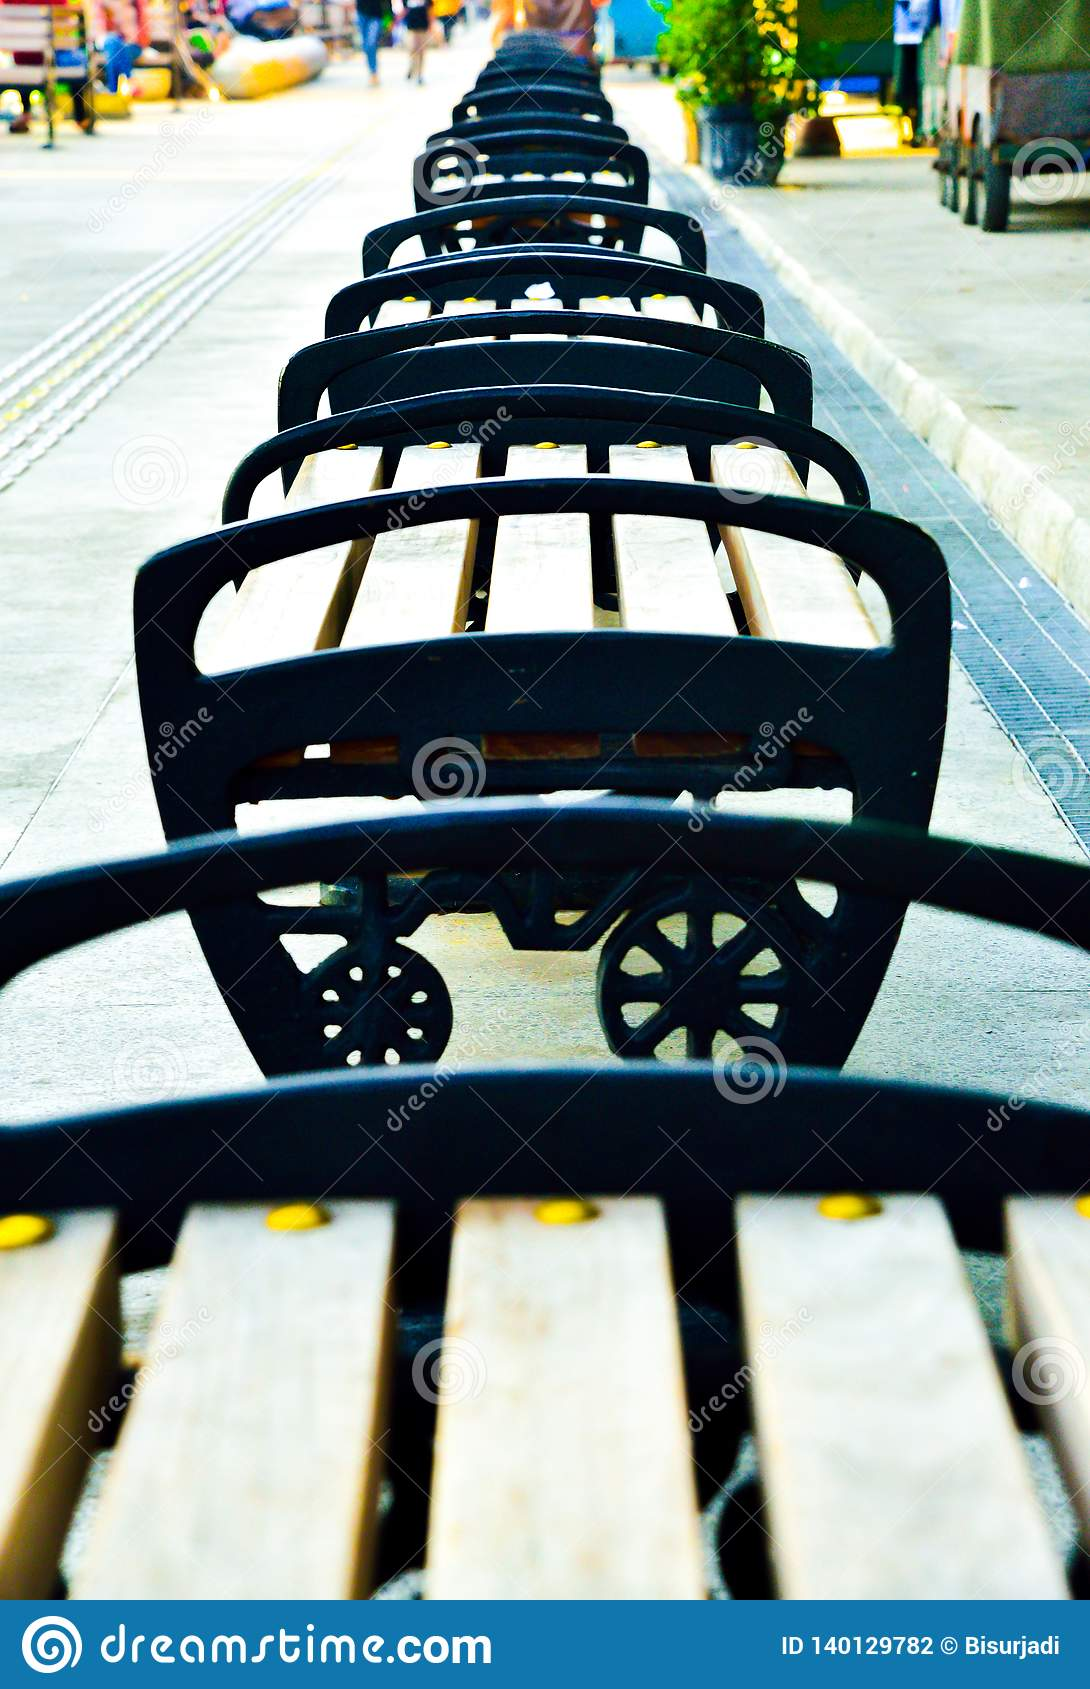 Rows of wood and metal chair on the open air shopping street in South East Asia